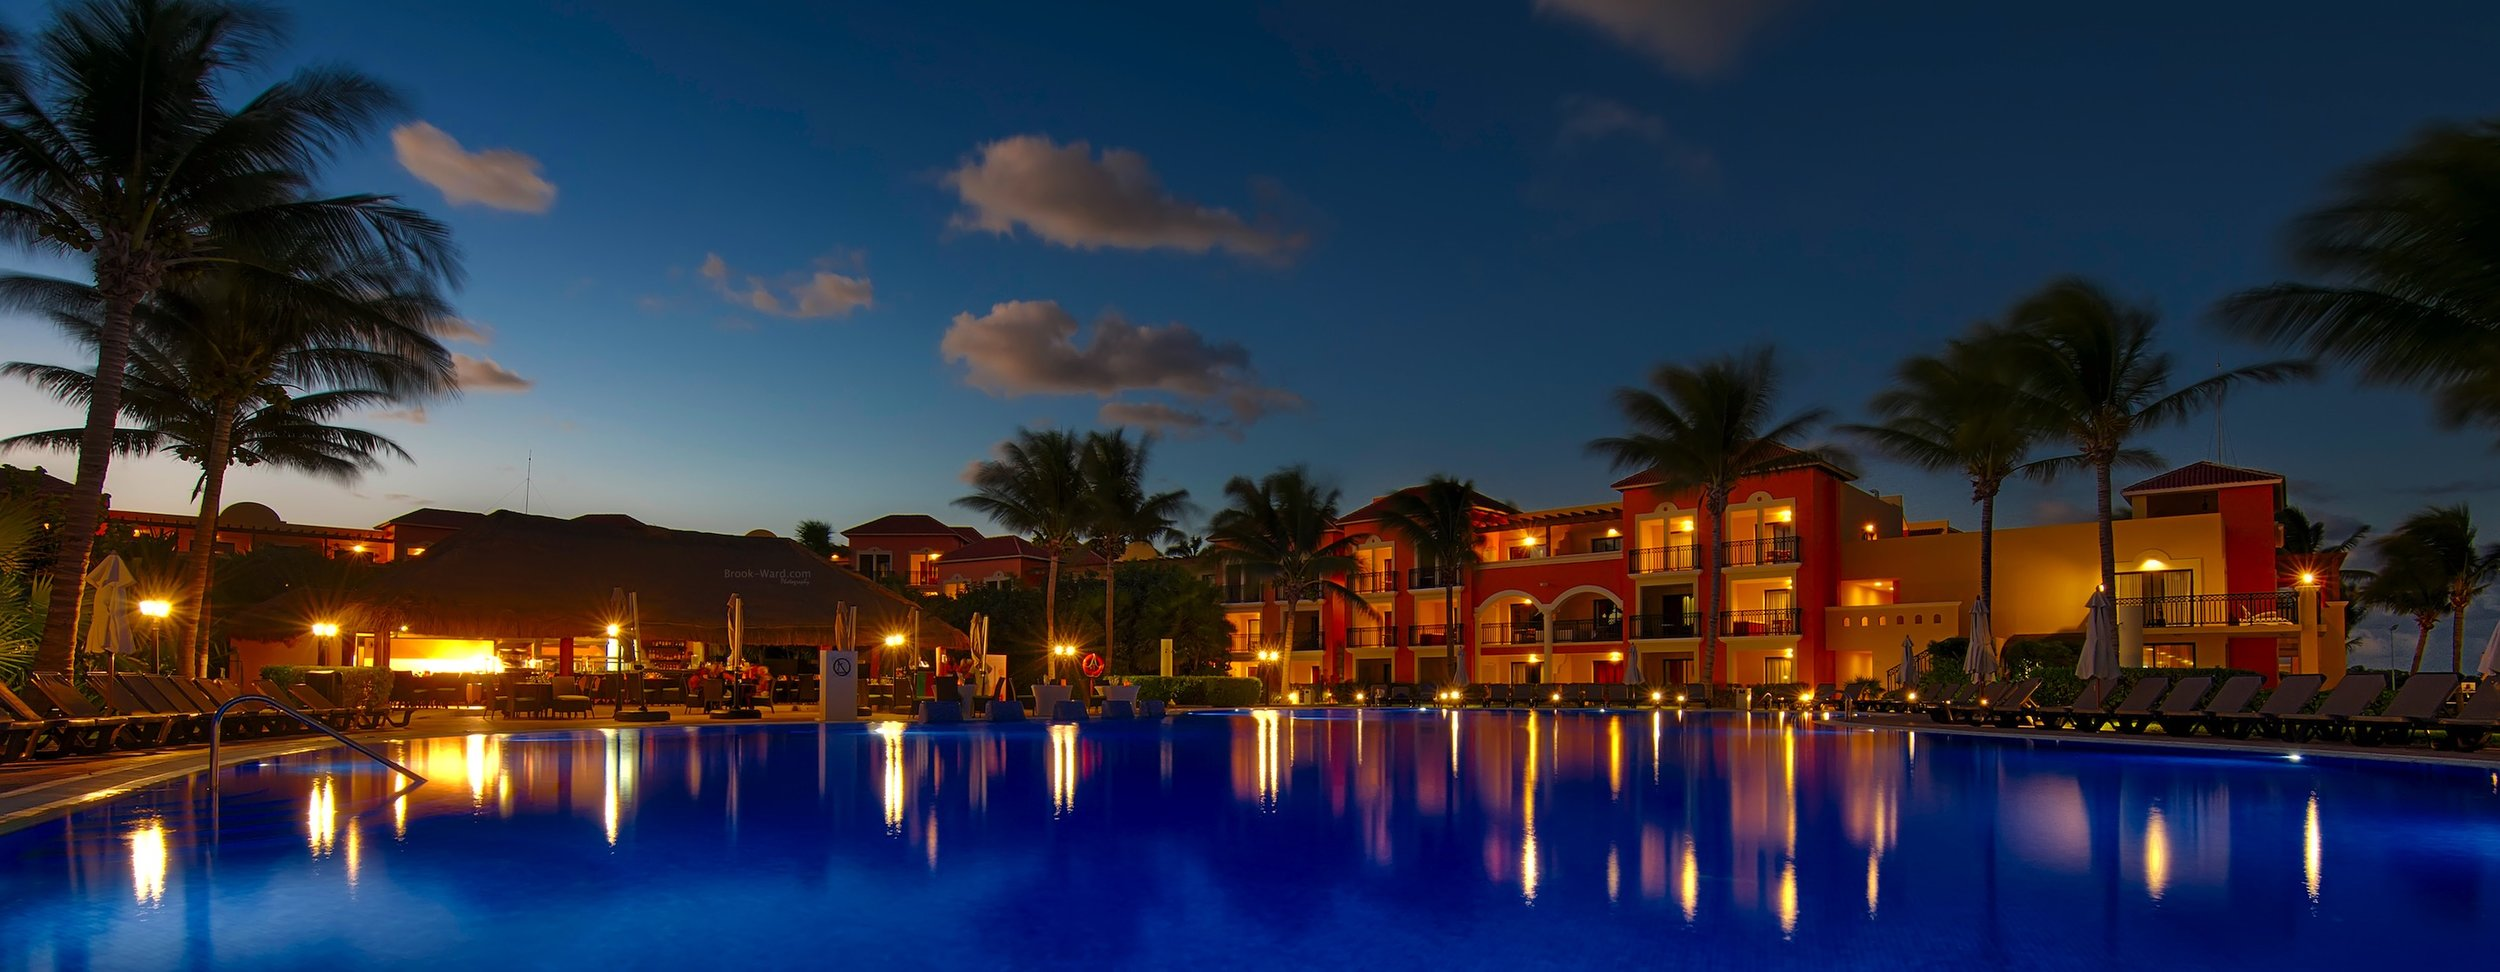 Mexican Blue Hour